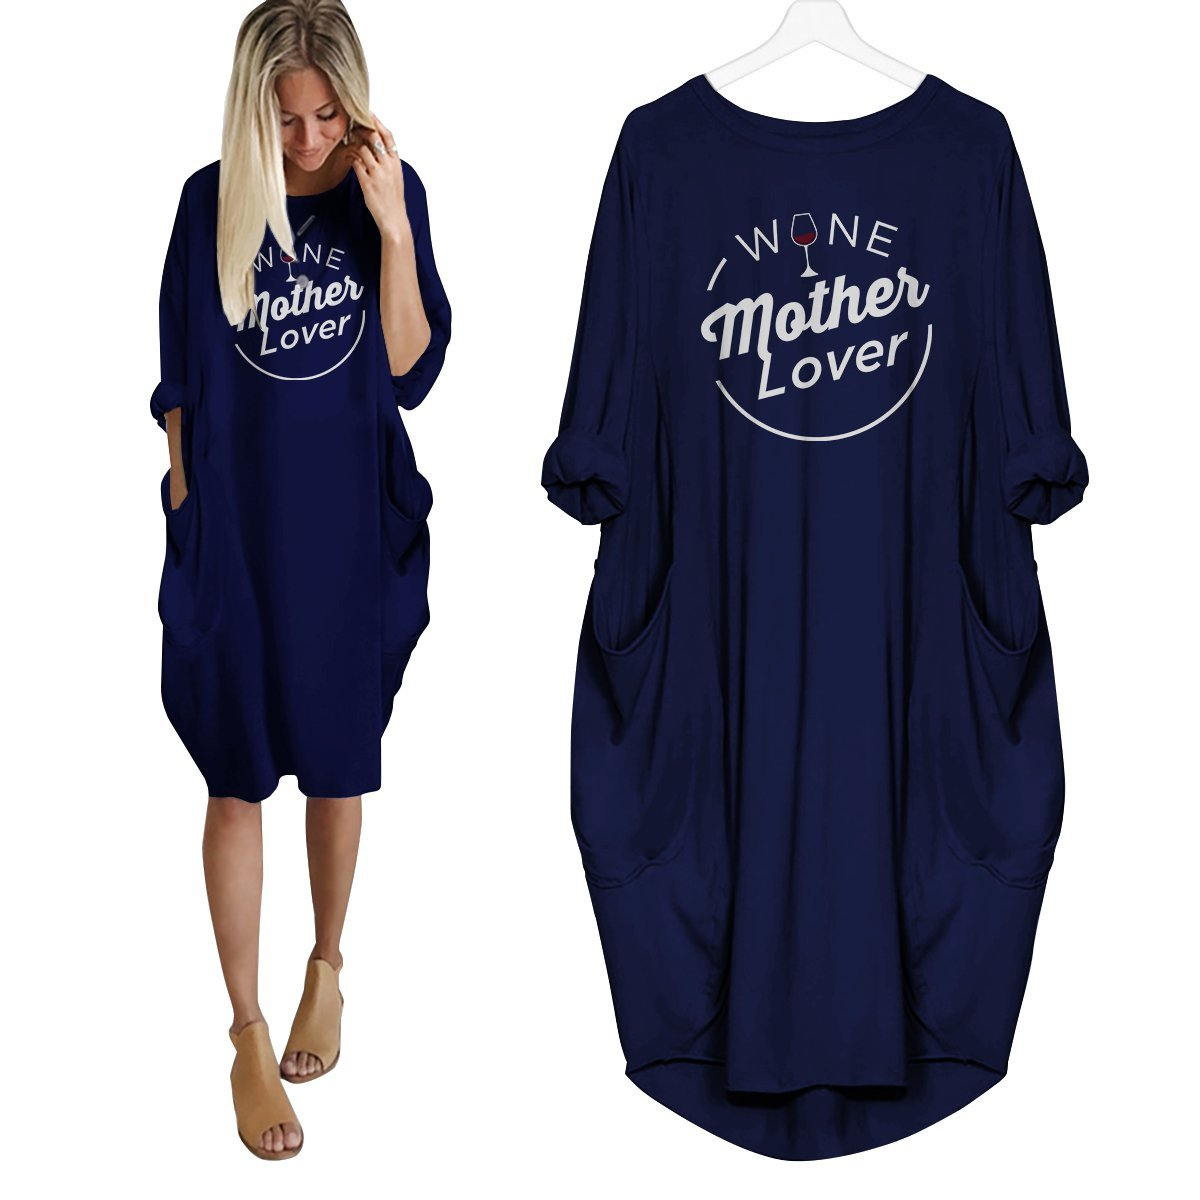 Wine Mother Lover Dress Navy Blue / S